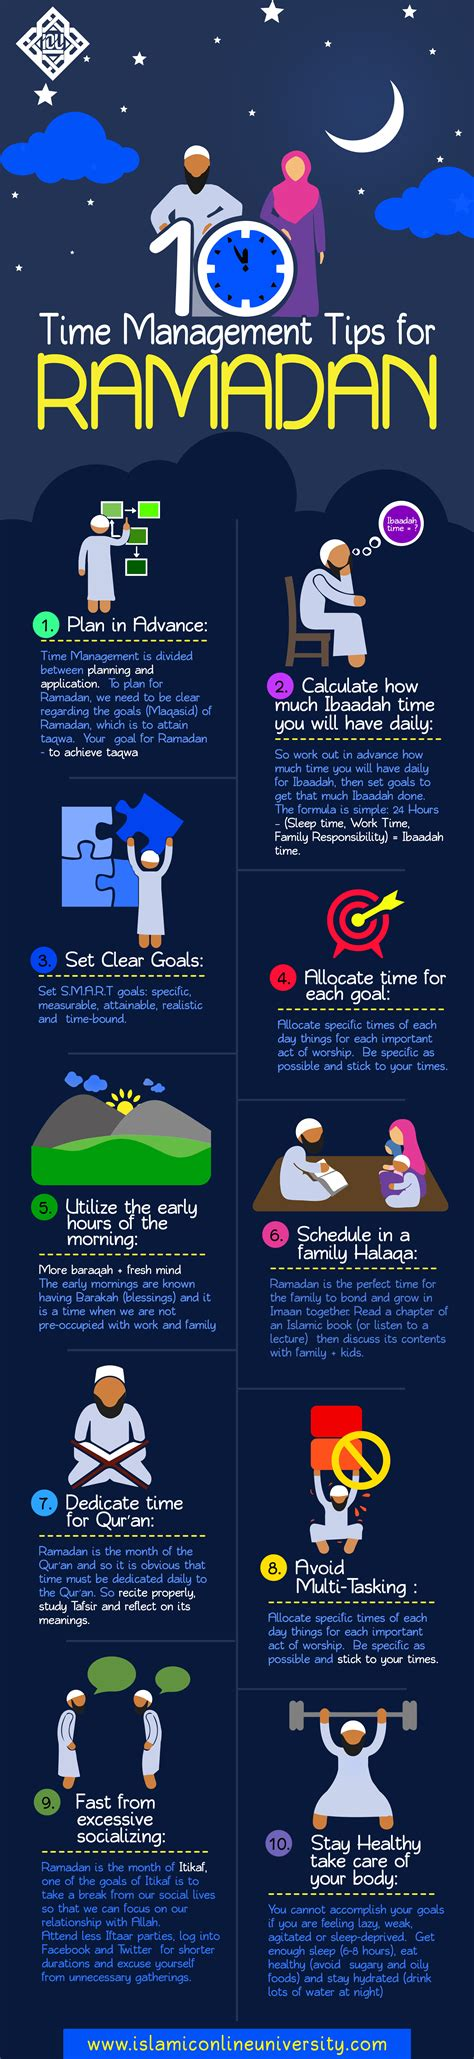 10 Time Management Tips For Ramadan 2015. Donating Car To Charity Dish Installation Inc. California Multimodal Llc A1 Storage La Mesa. Mercedes Benz Used Car Search. Metro Carrier Ethernet Simple Survey Template. Healthcare Credentialing Jobs. Dentist In Woonsocket Ri Programmers In India. Bail Bonds In Riverside Ca Smokey Brown Roach. Siberian Husky Seizures Electric Rates Dallas